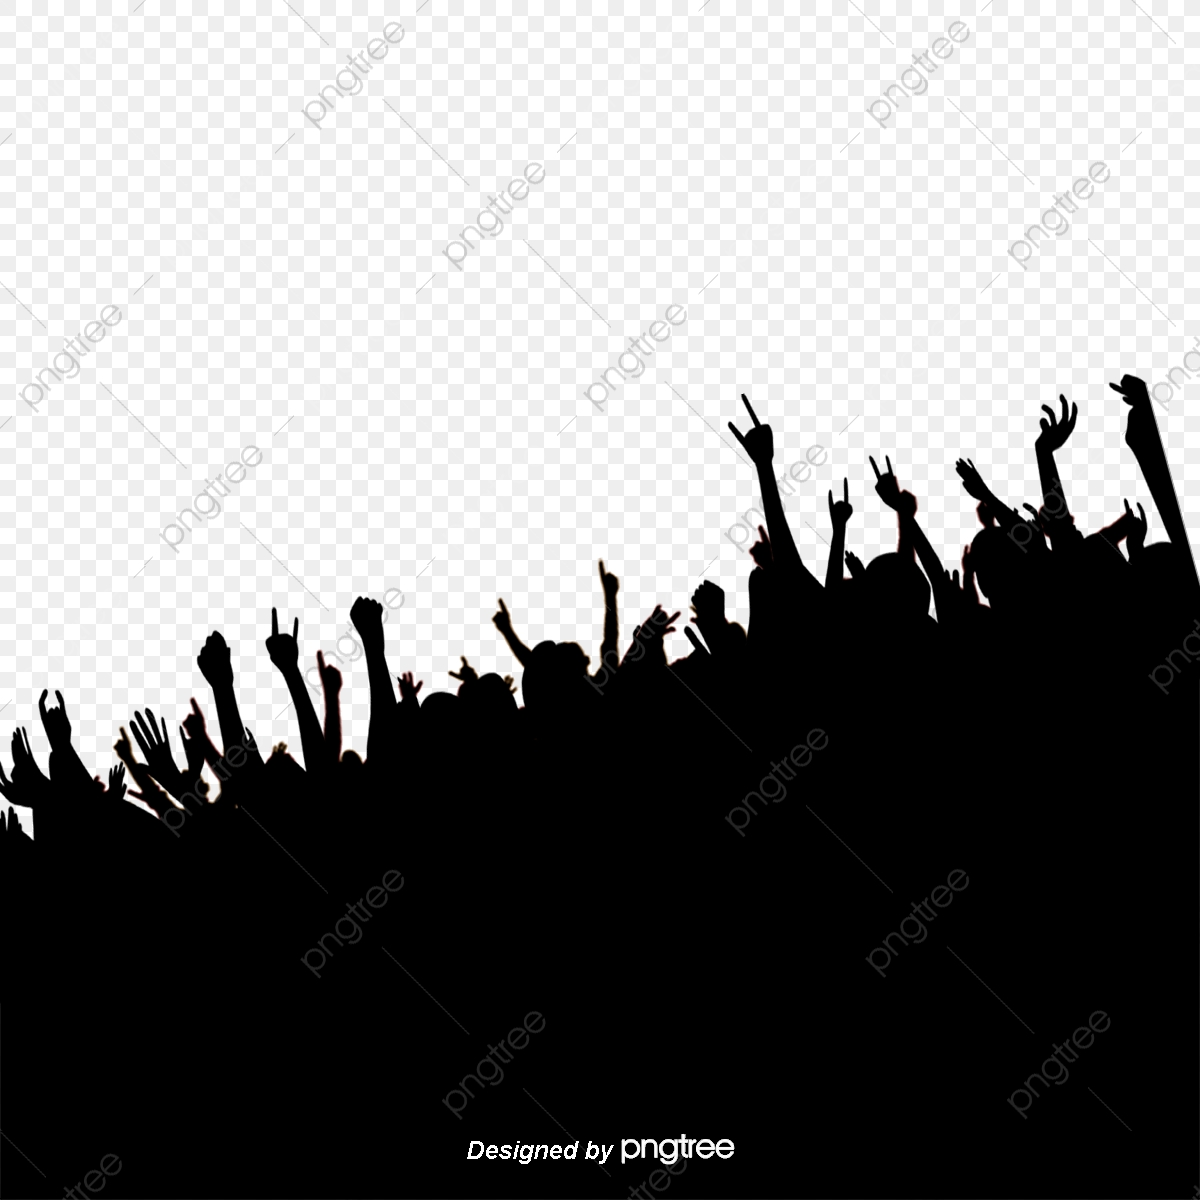 Cheering Crowd, Cheer, Crowd, Sketch PNG Transparent Clipart Image.